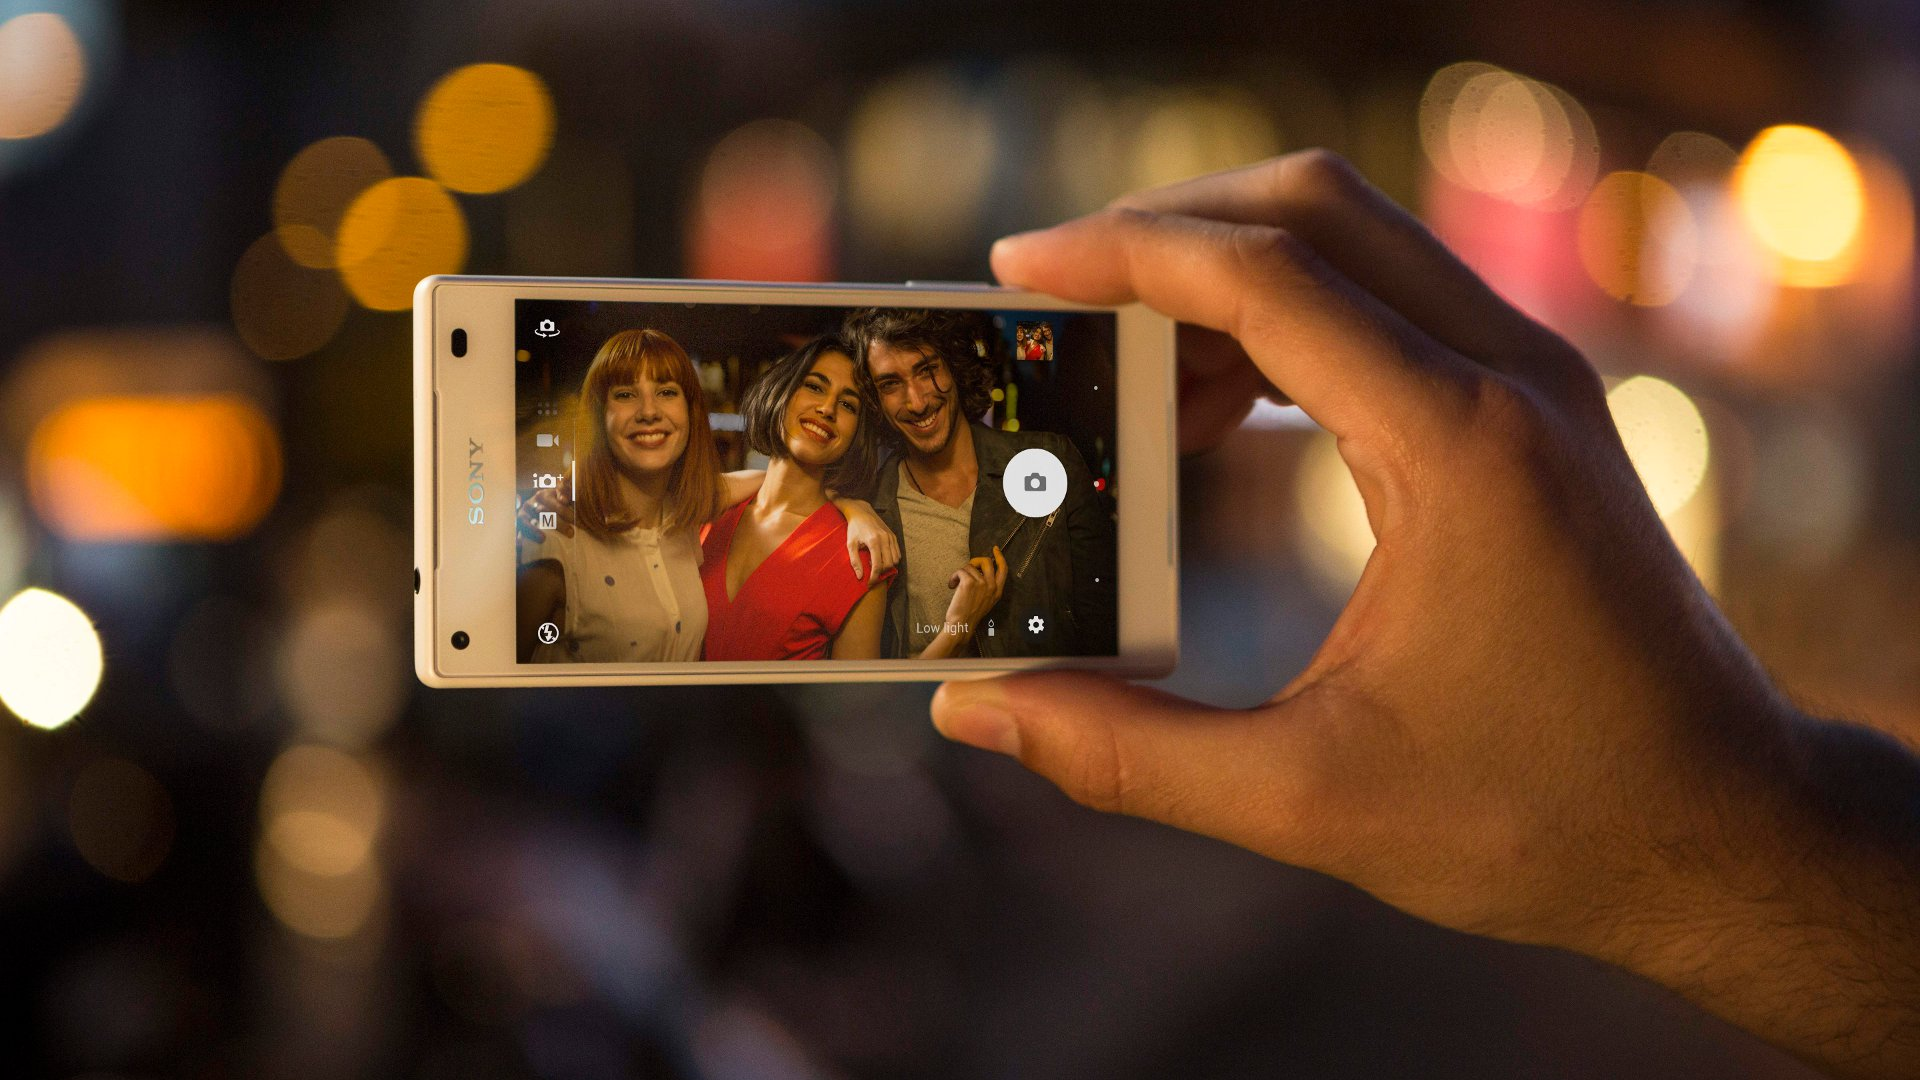 Sony Xperia Z5 Compact - White Color